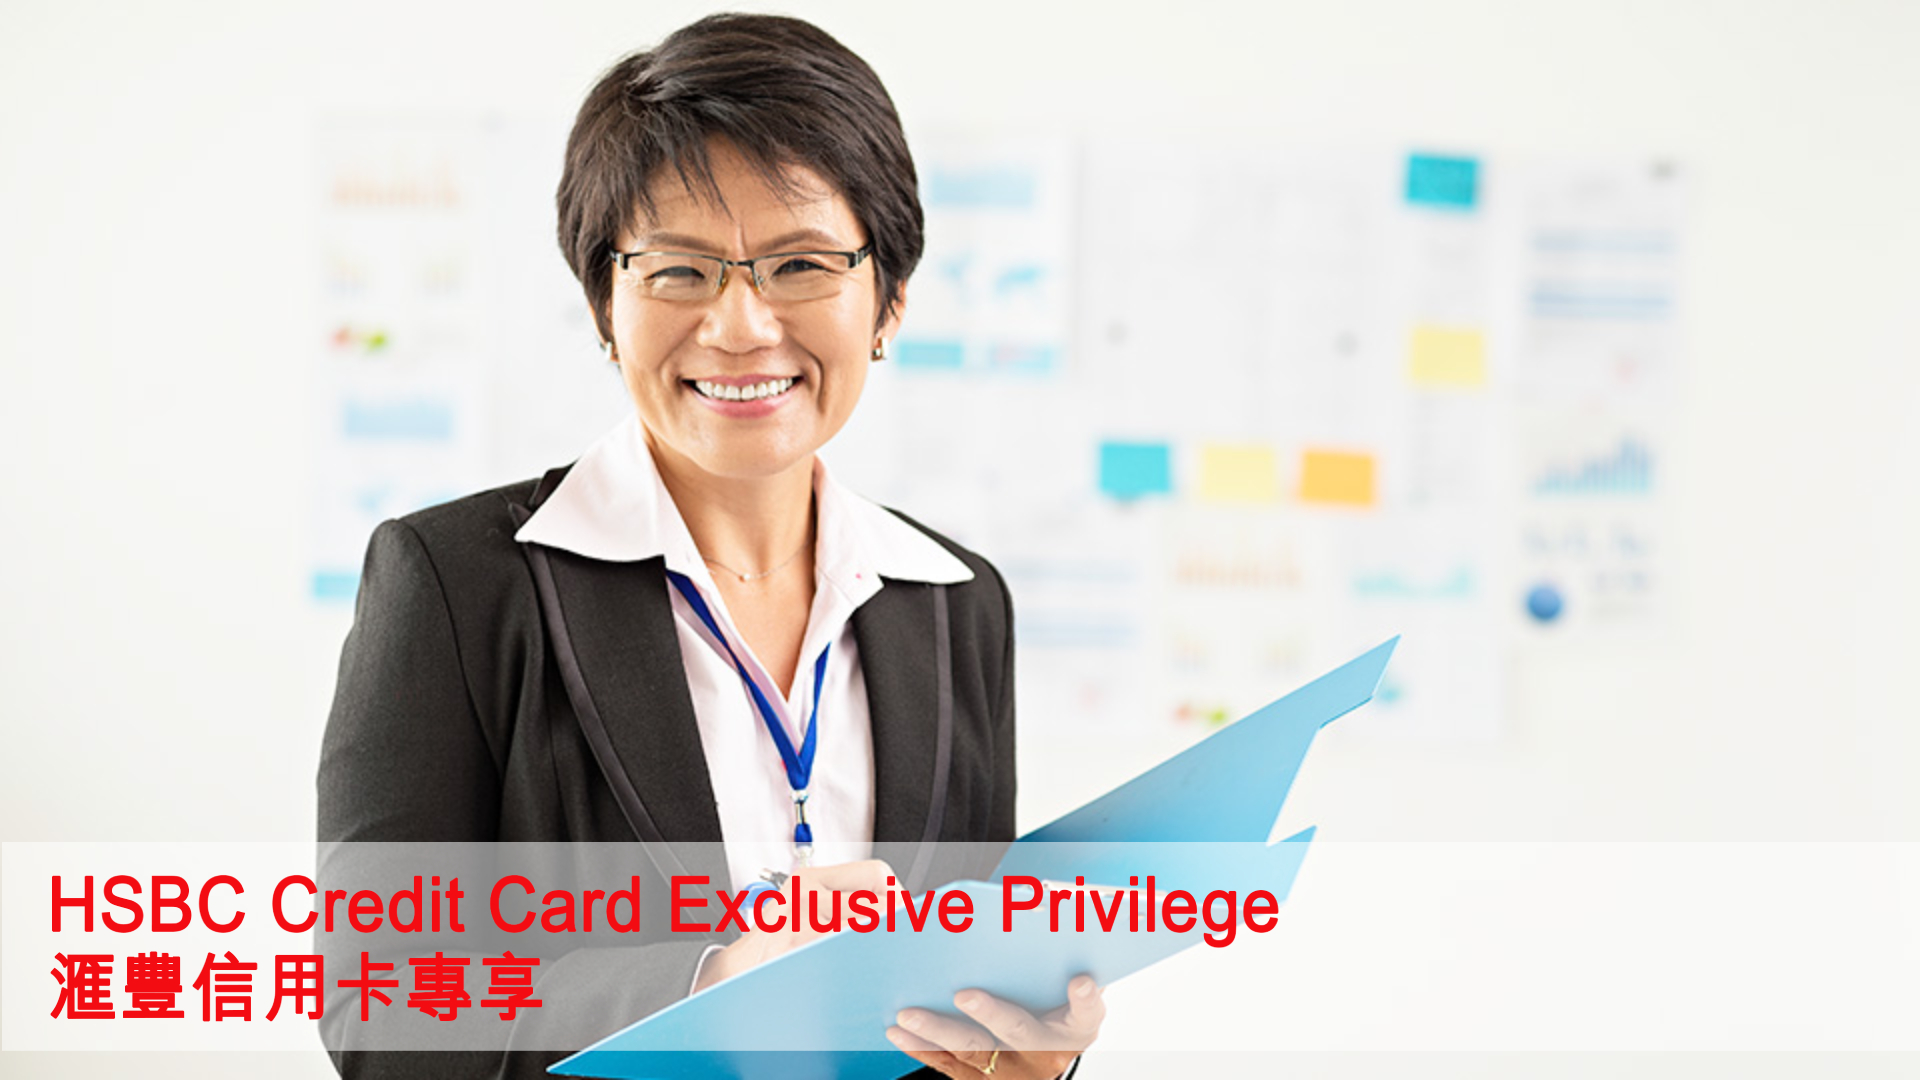 HSBC Credit Card Exclusive - Women 50+ Physical Check-up with Extra Privilege